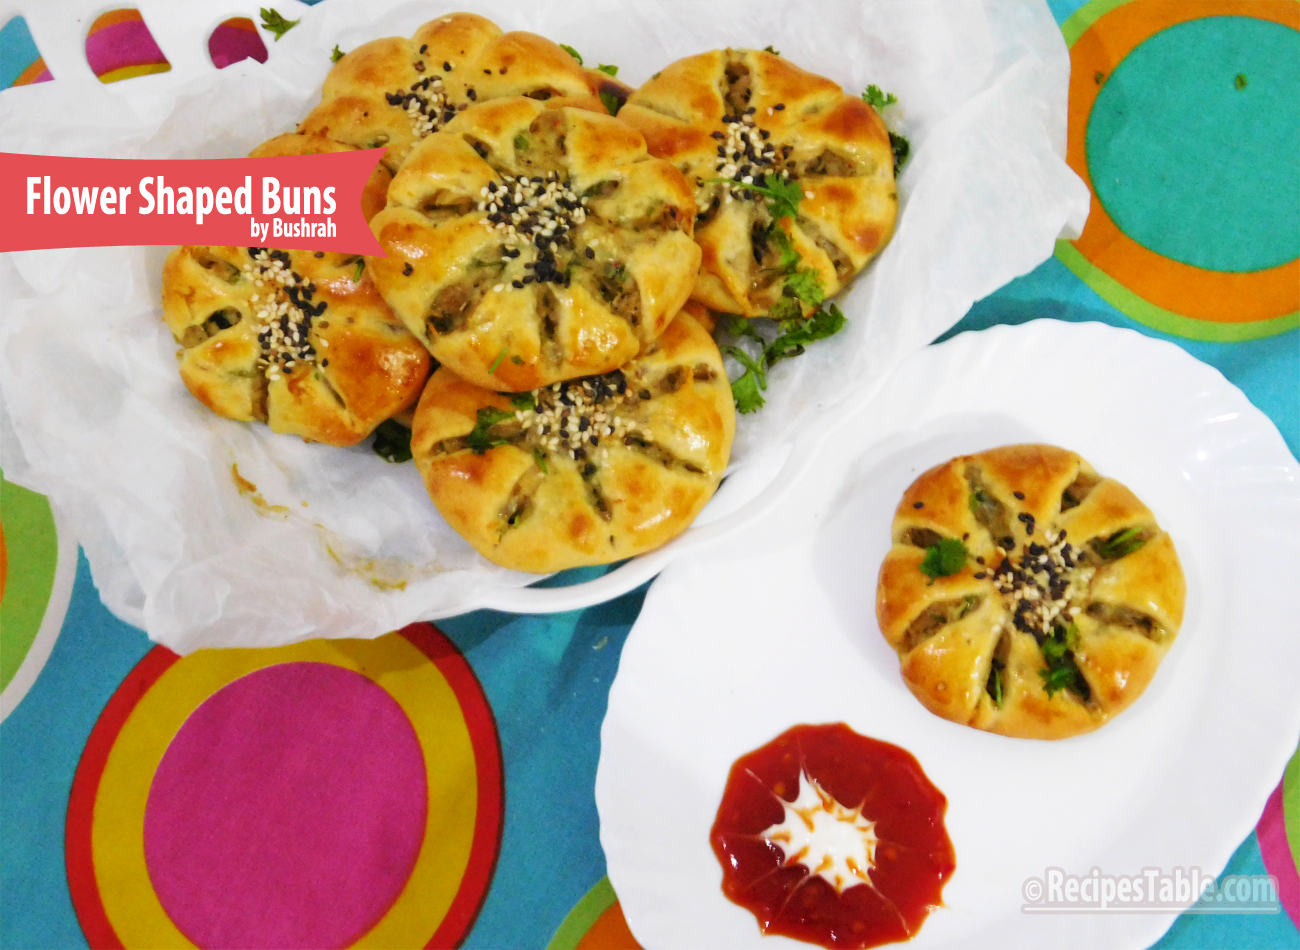 Flower Shaped Buns Recipe